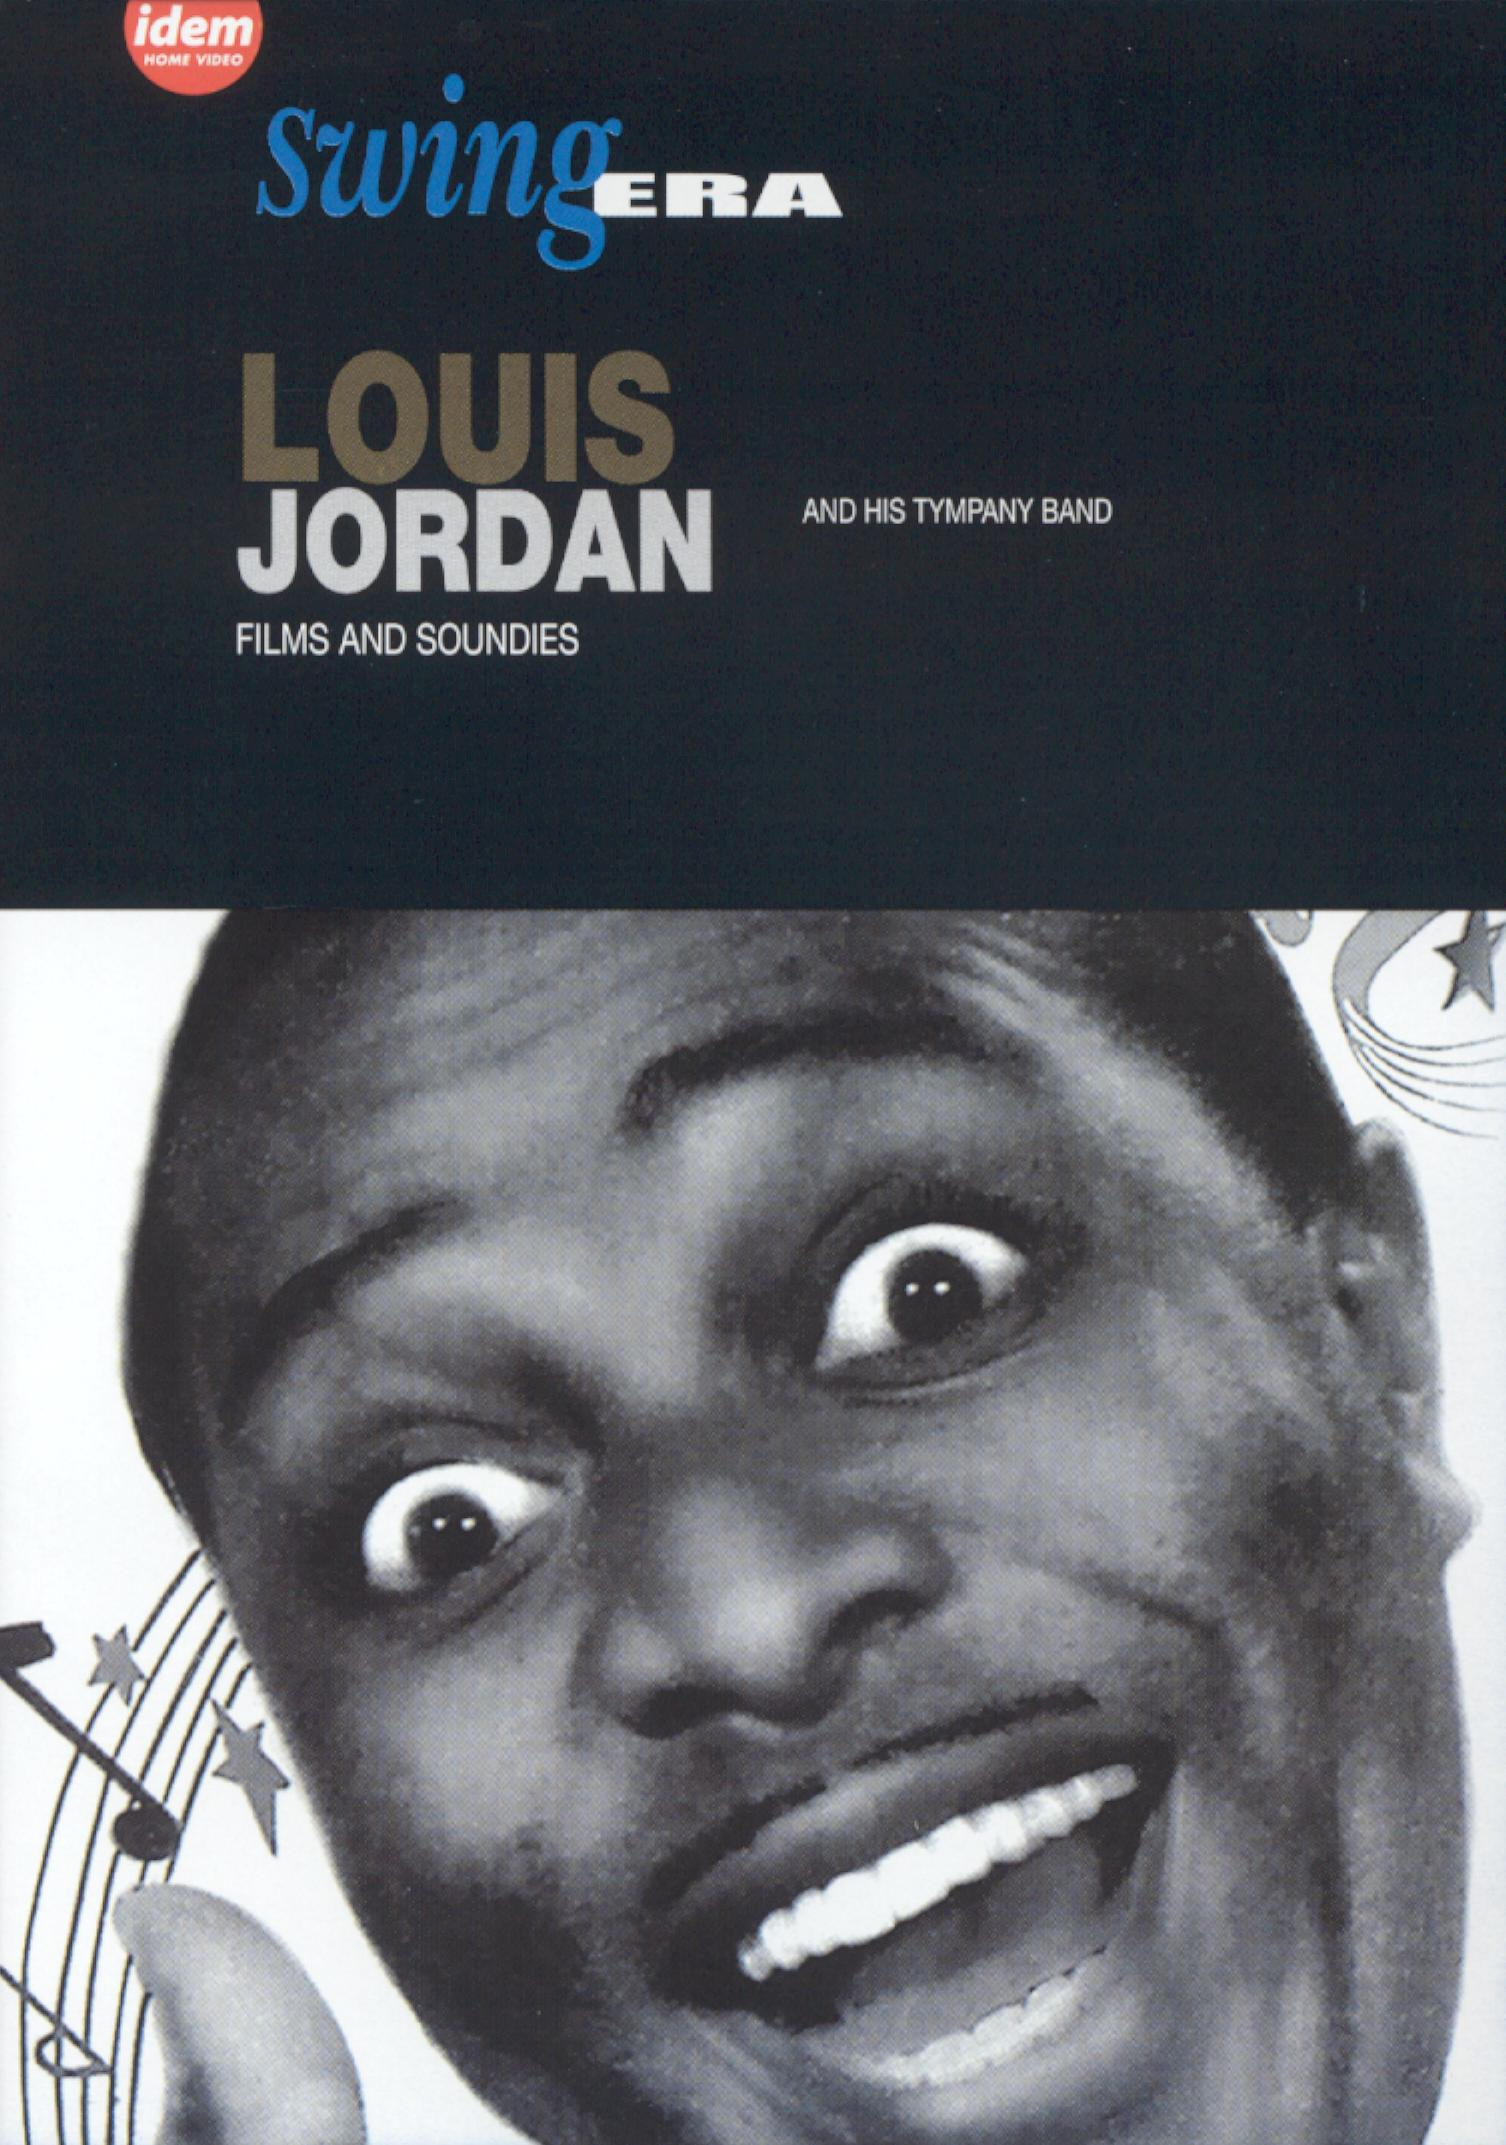 Swing Era: Louis Jordan - Films and Soundies